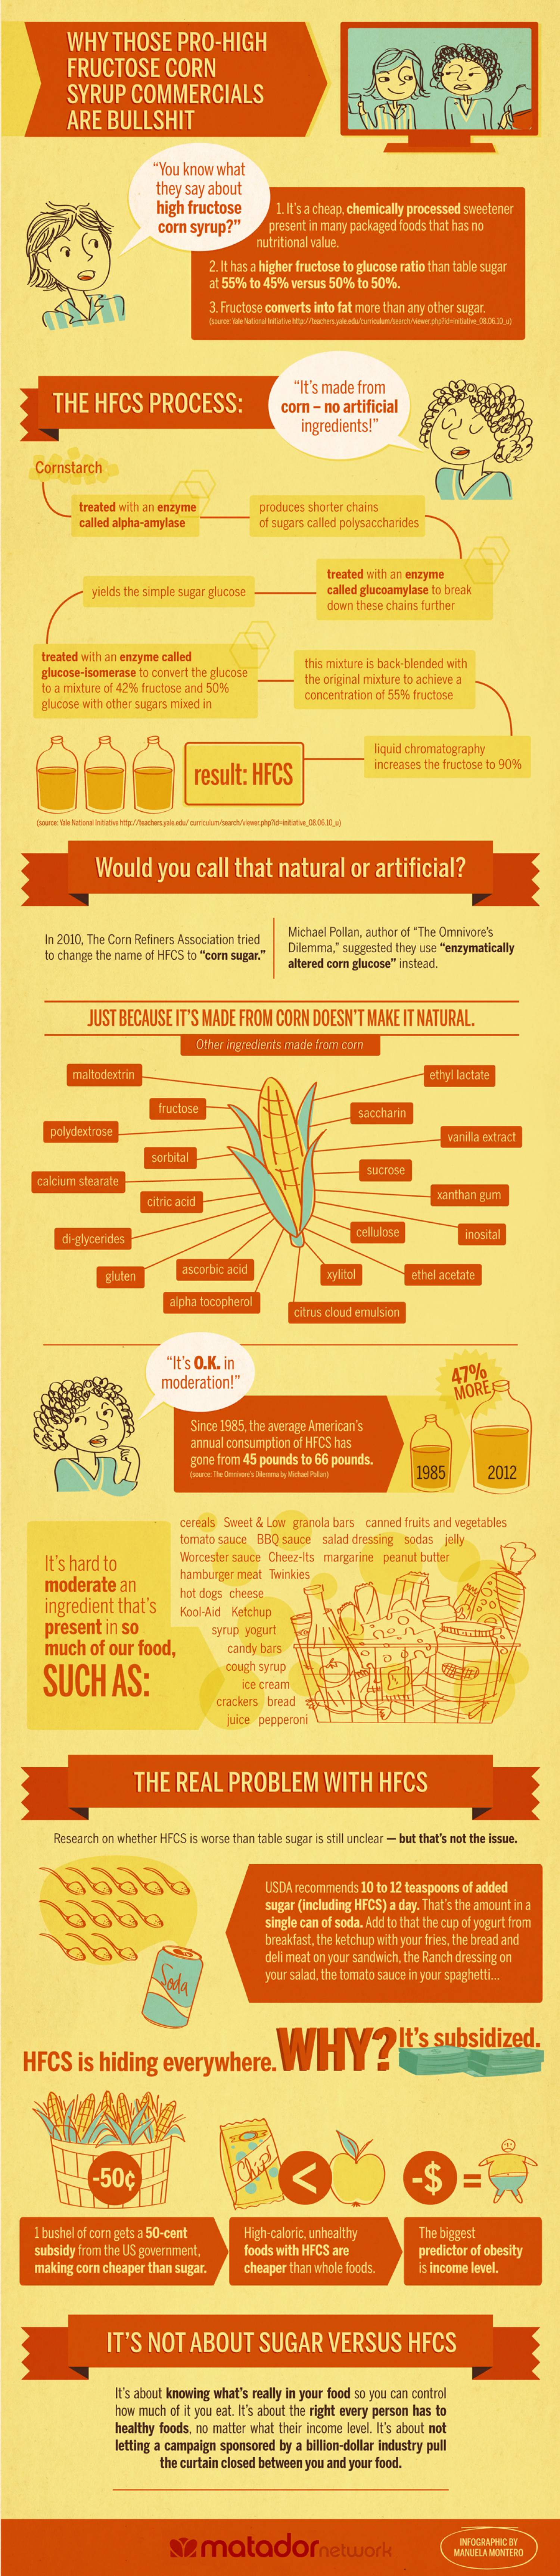 Why those pro-high fructose corn syrup commercials are bullshit Infographic